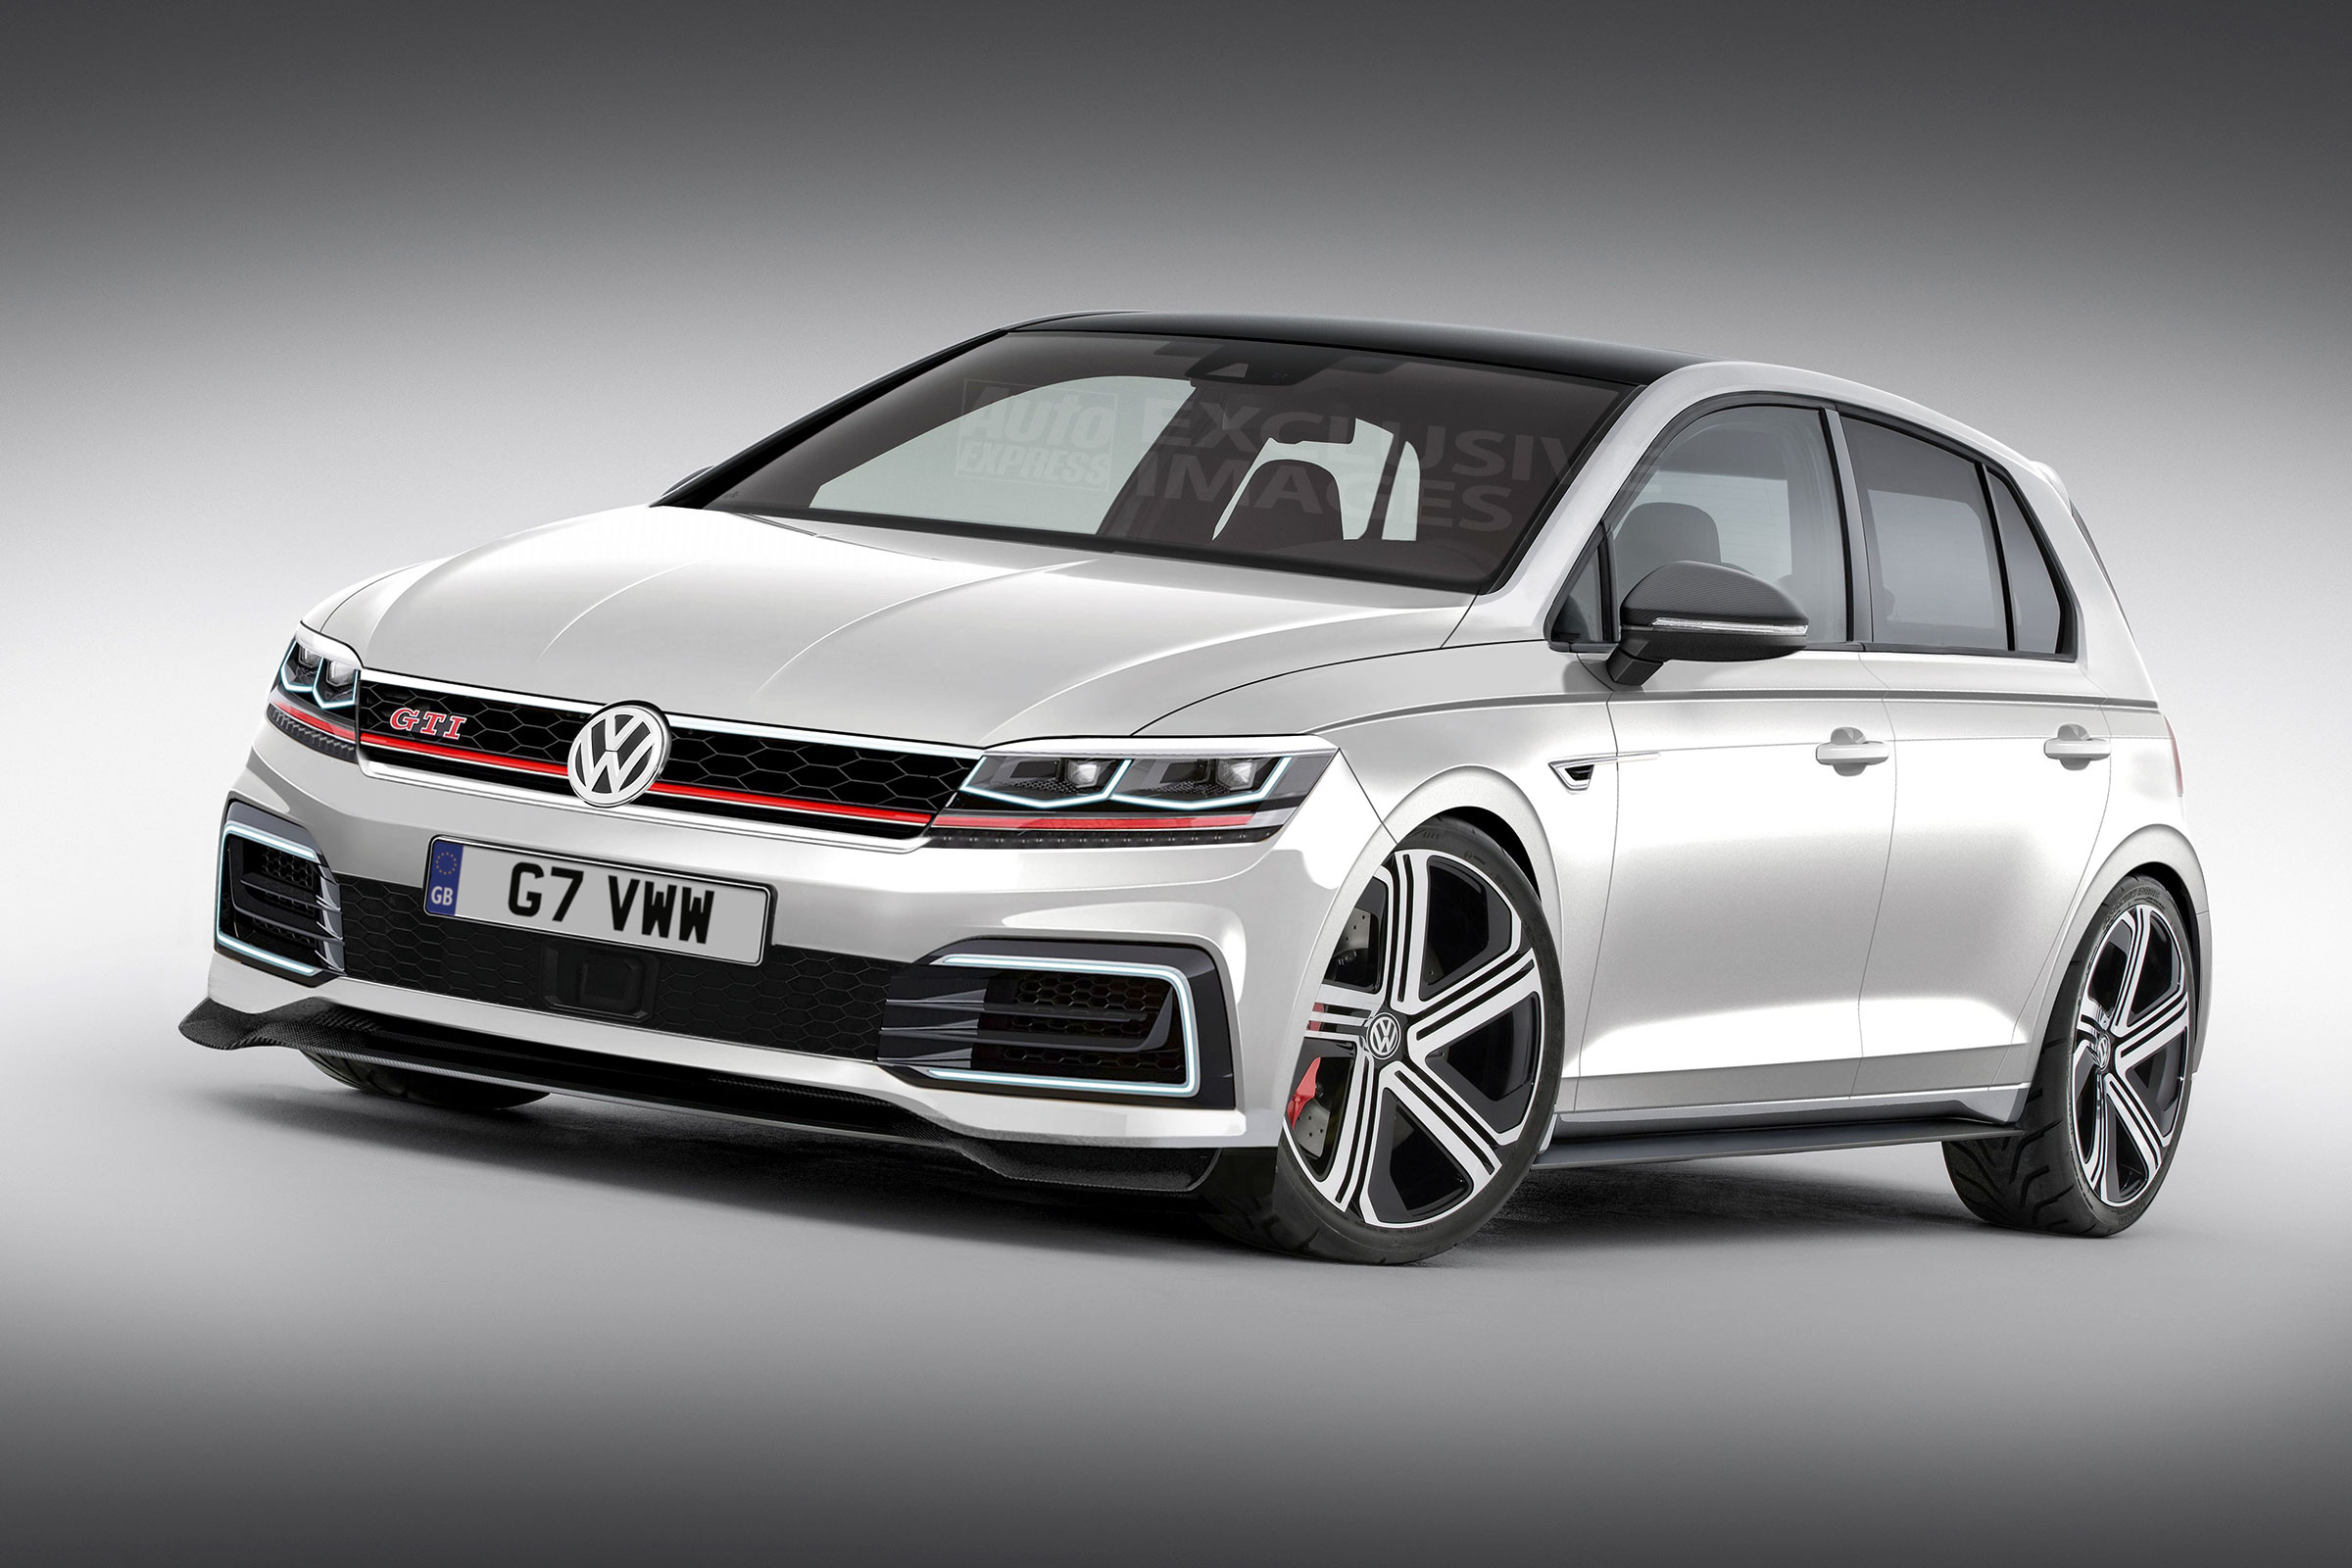 New Vw Golf Gti Mk8 On Sale In 2019 With Big Power Boost Auto Express